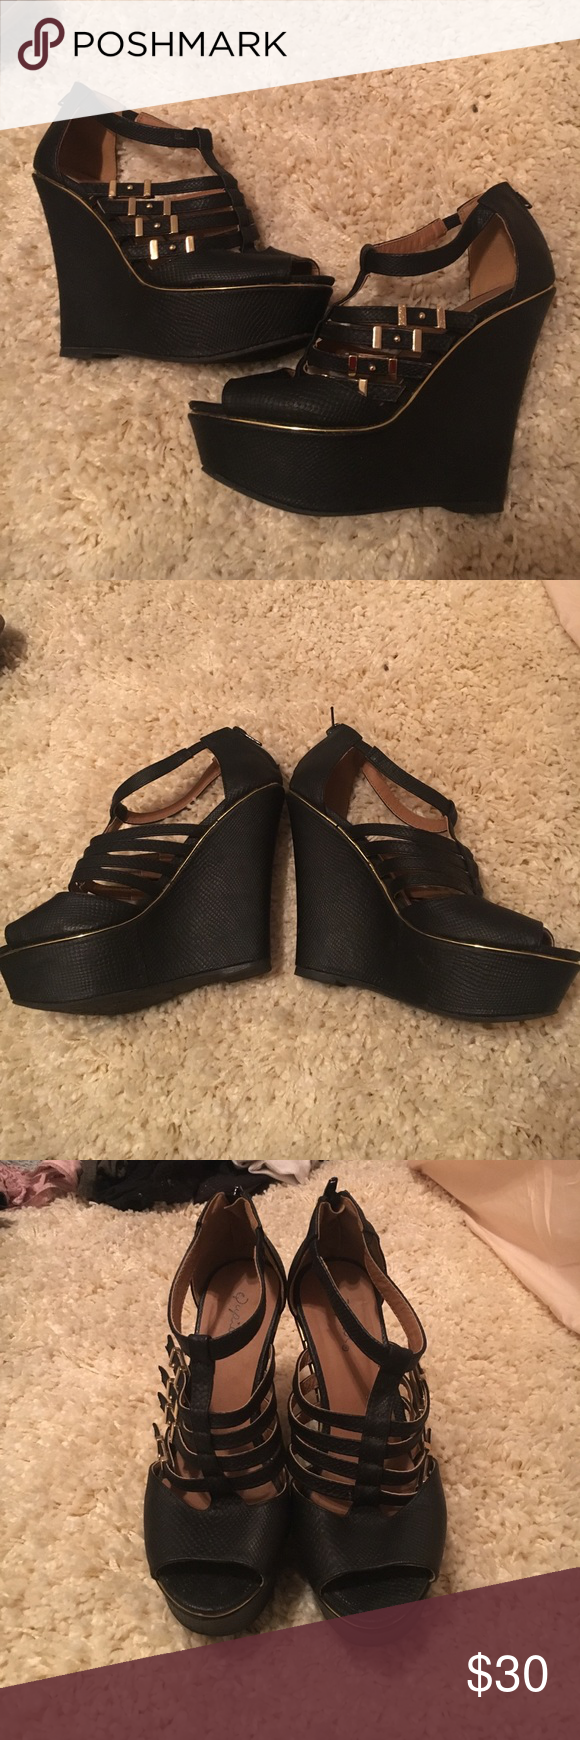 Black and Gold Buckled Wedges Super cute. Only worn a couple of times. Great condition! Qupid Shoes Wedges